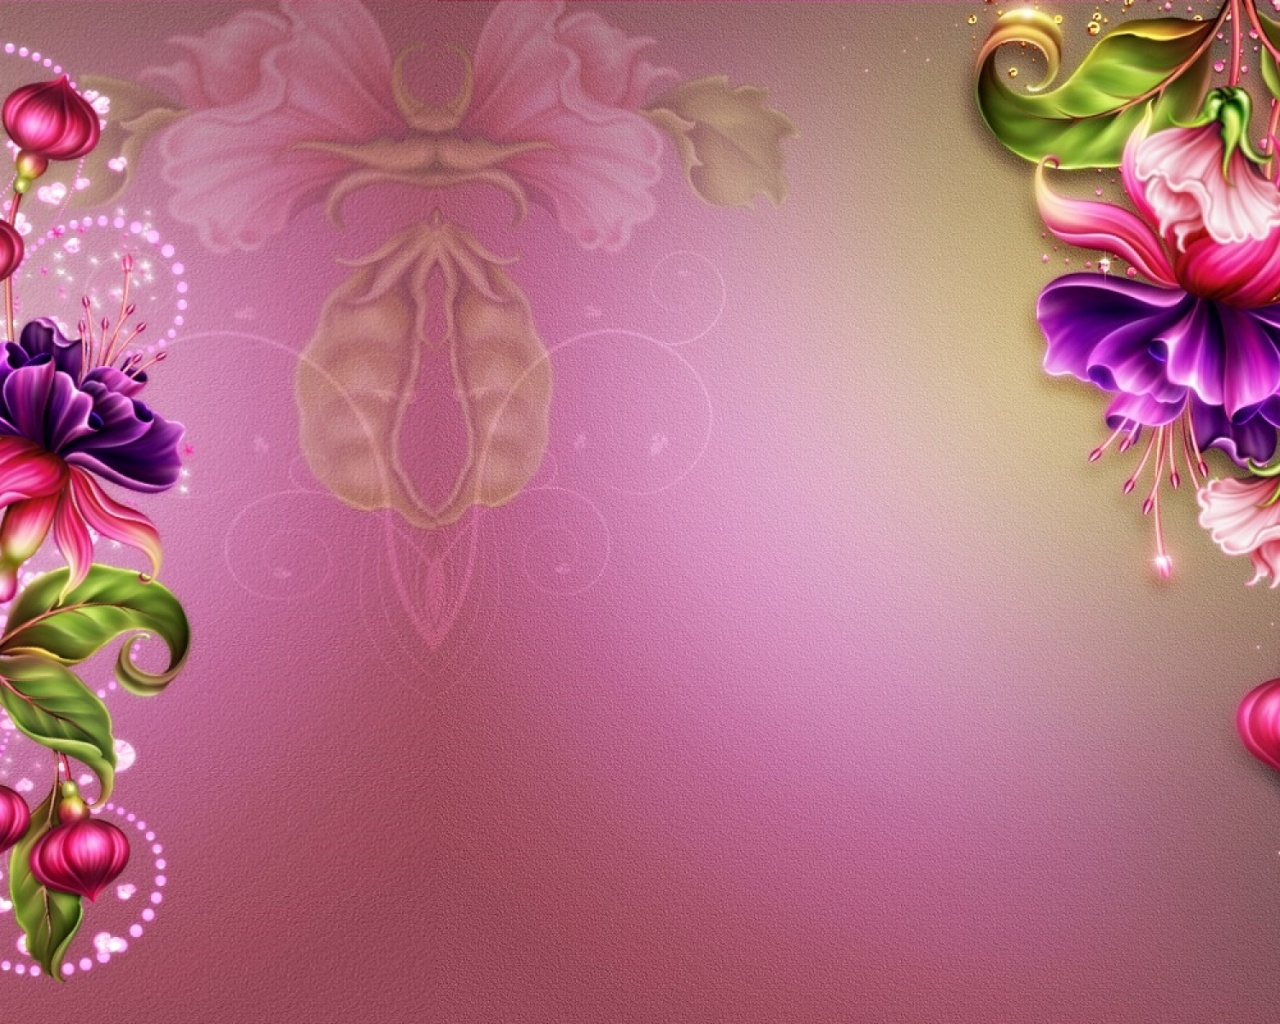 1280x1024 abstract fuchsia pink glamour desktop pc and mac wallpaper